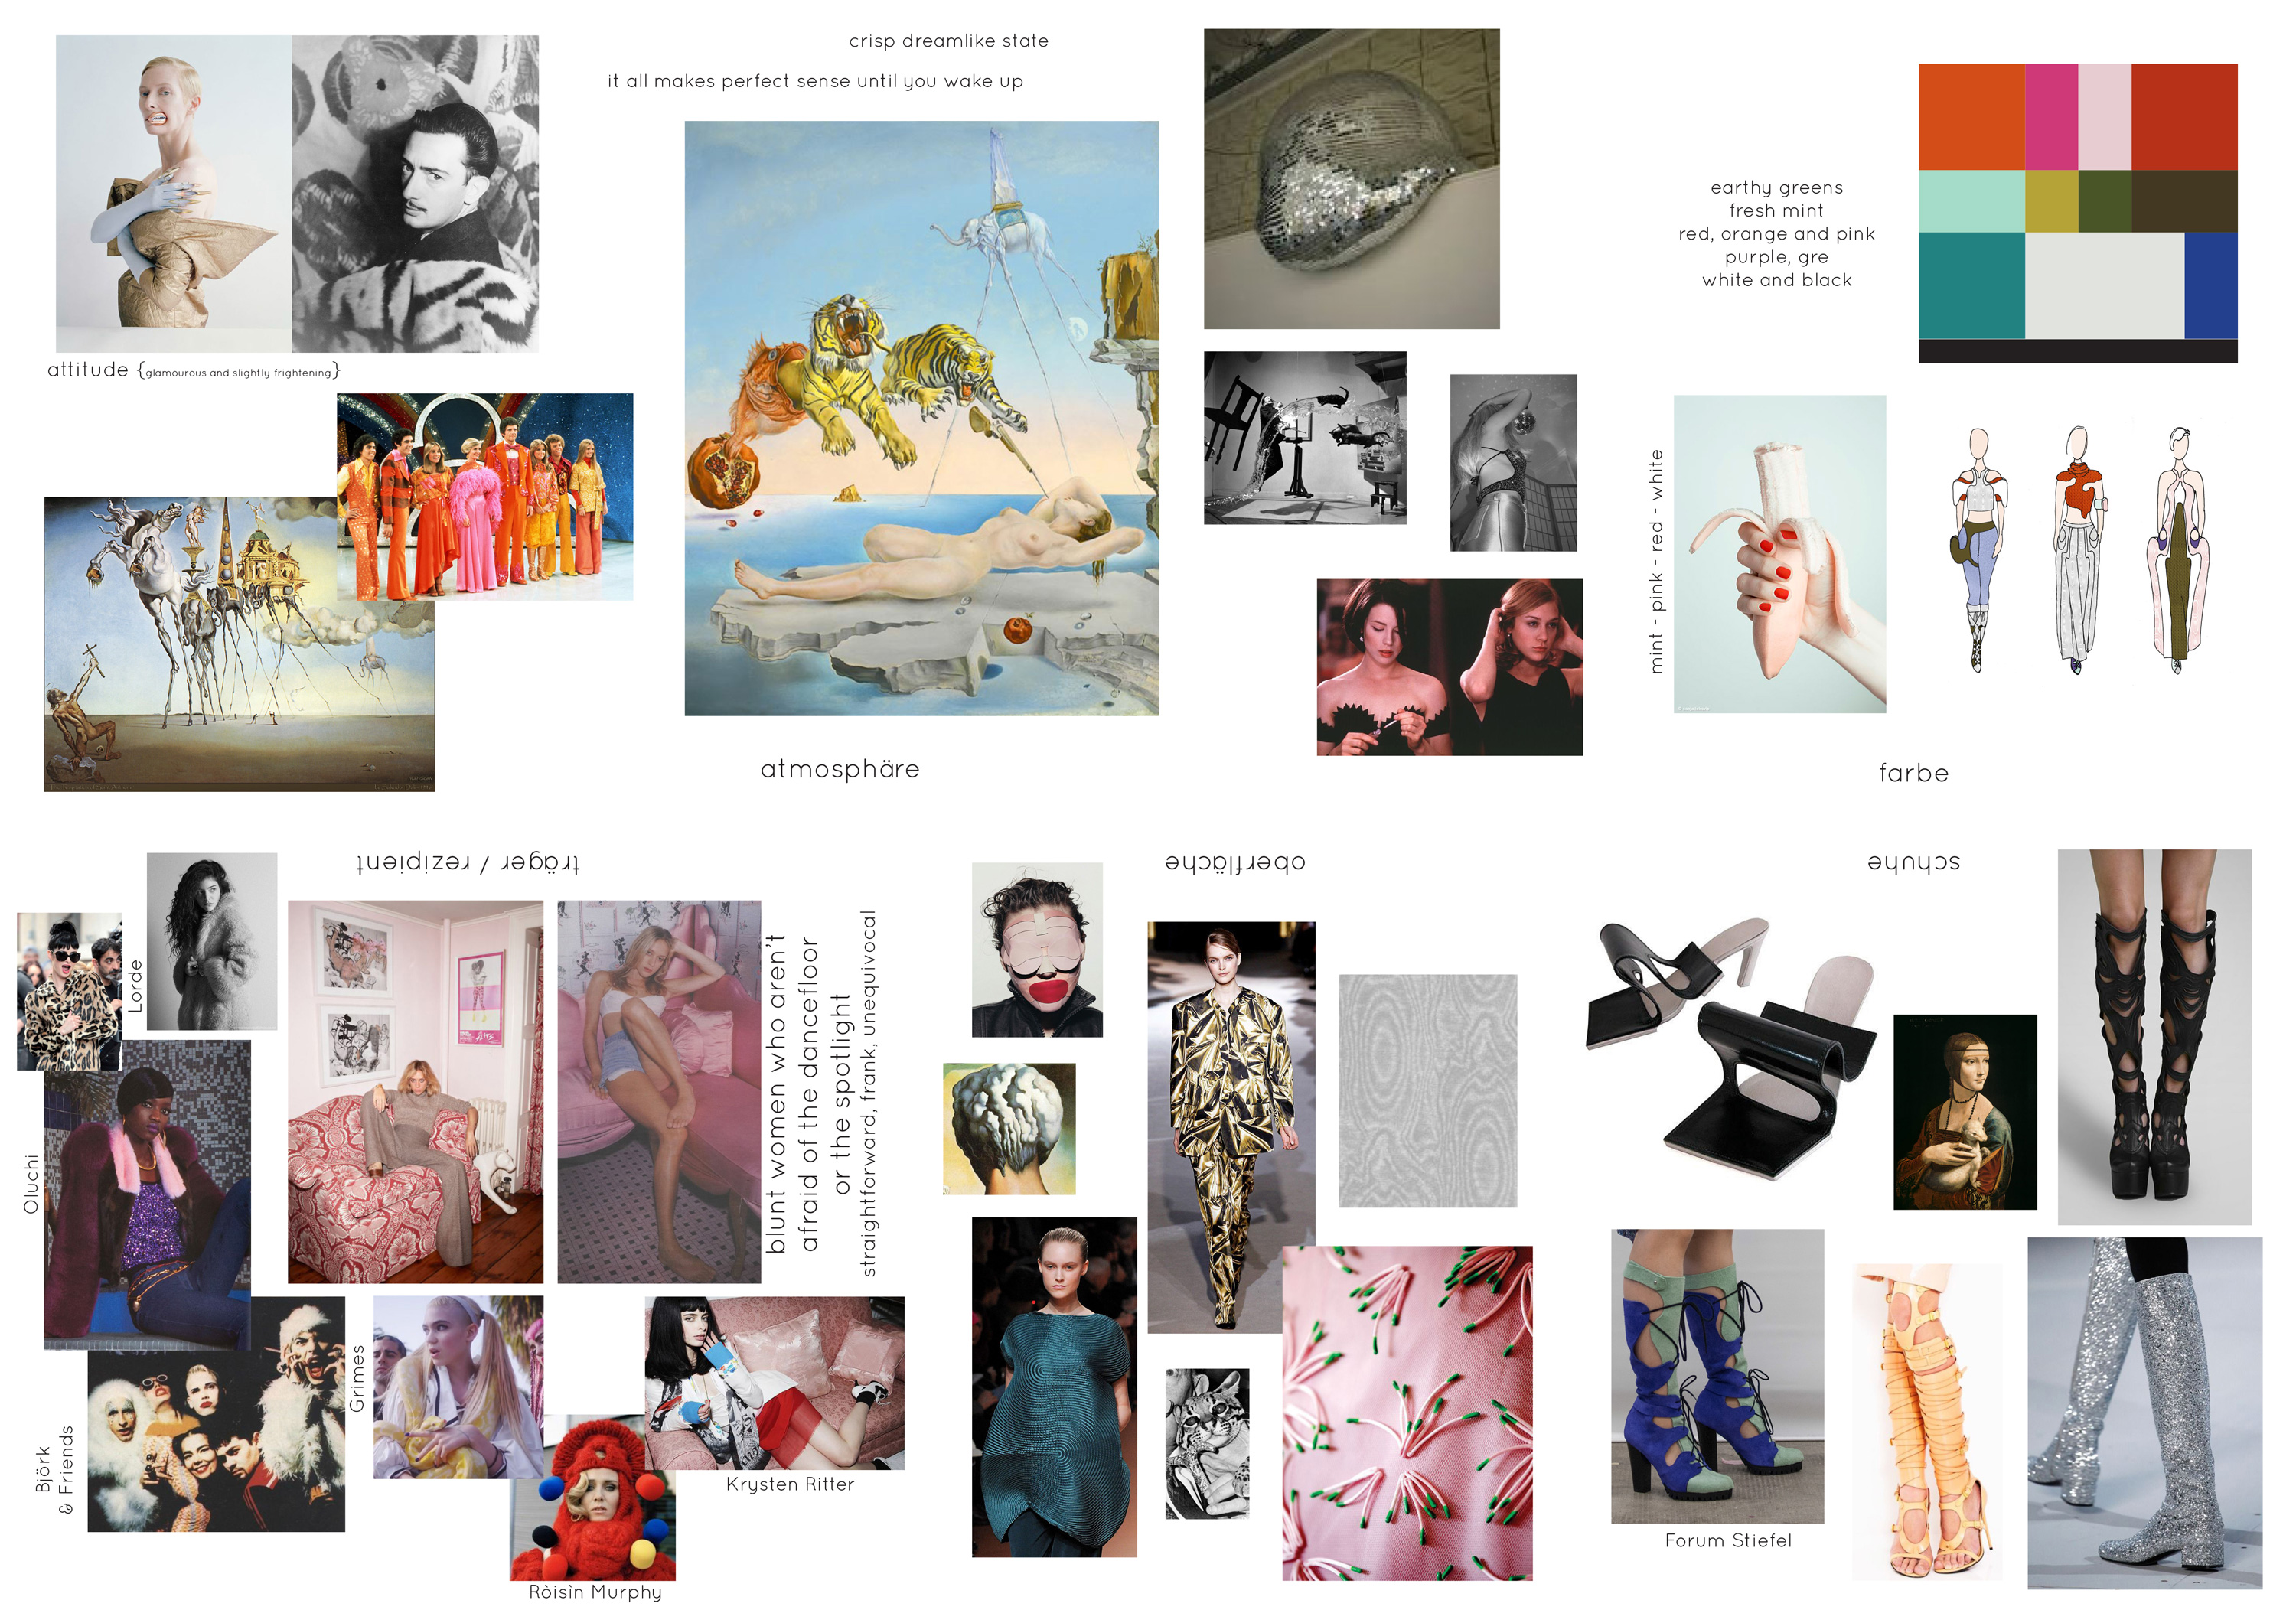 fashion mood board with inspiration images: salvador dali paintings, disco era fashion, chloe sevigny, björk, roisin murphy, krysten ritter, color schemes etc.